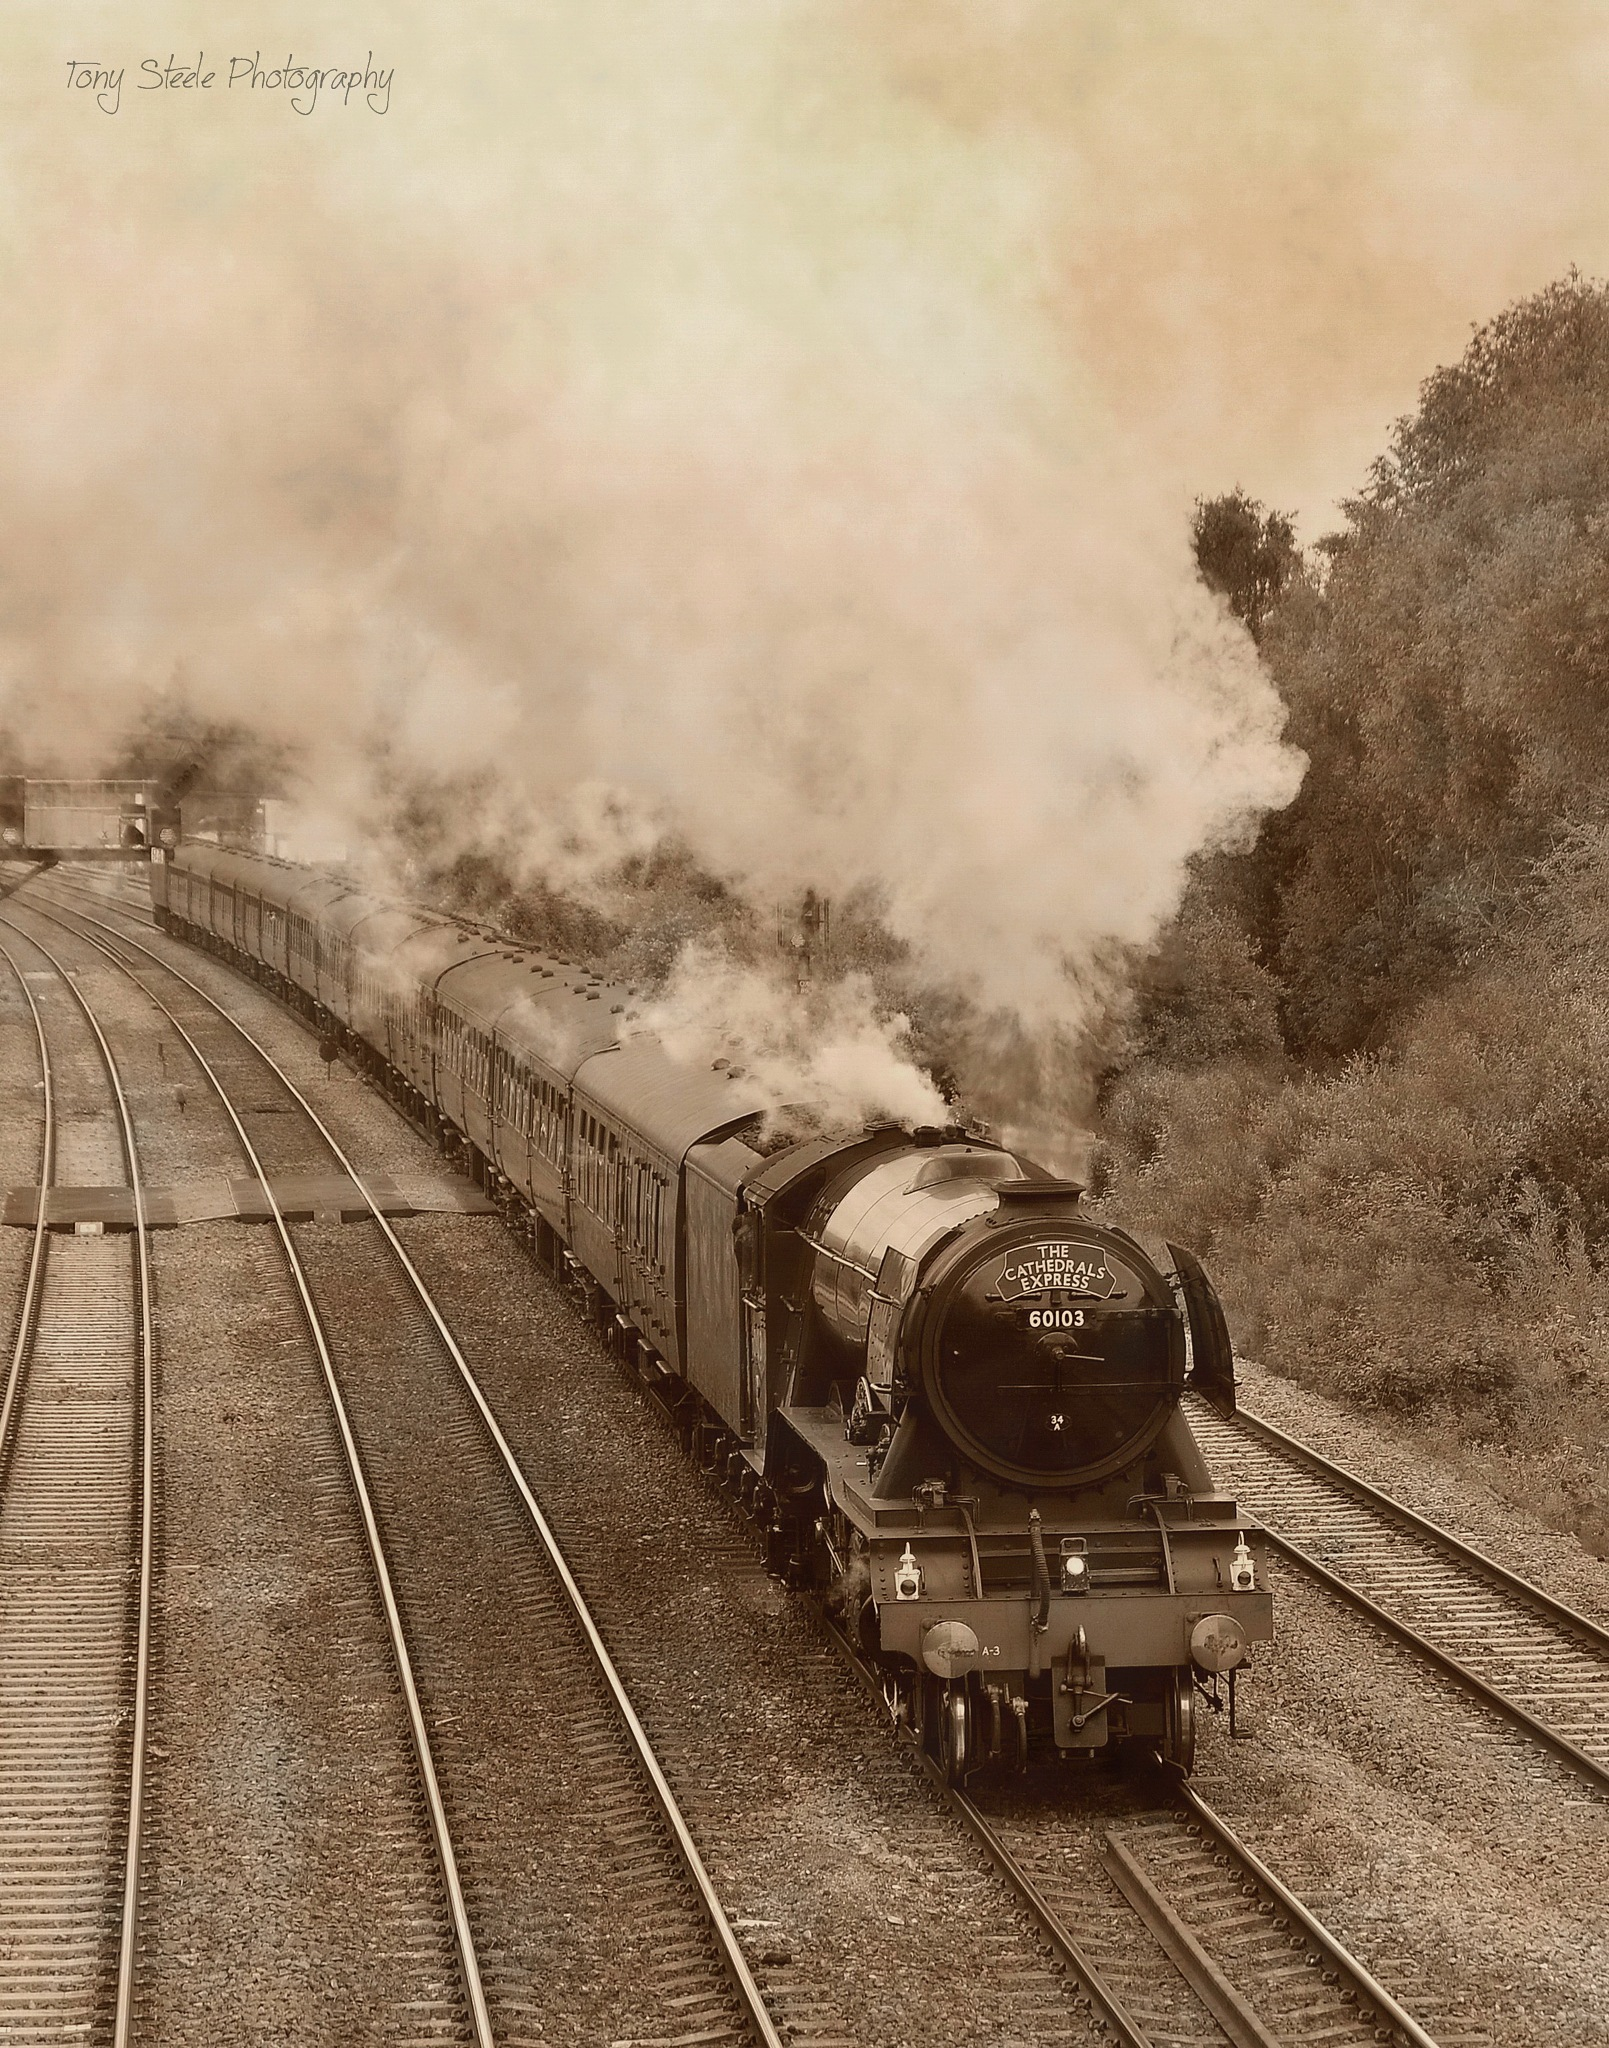 The Flying Scotsman (old style) by Tony Steele